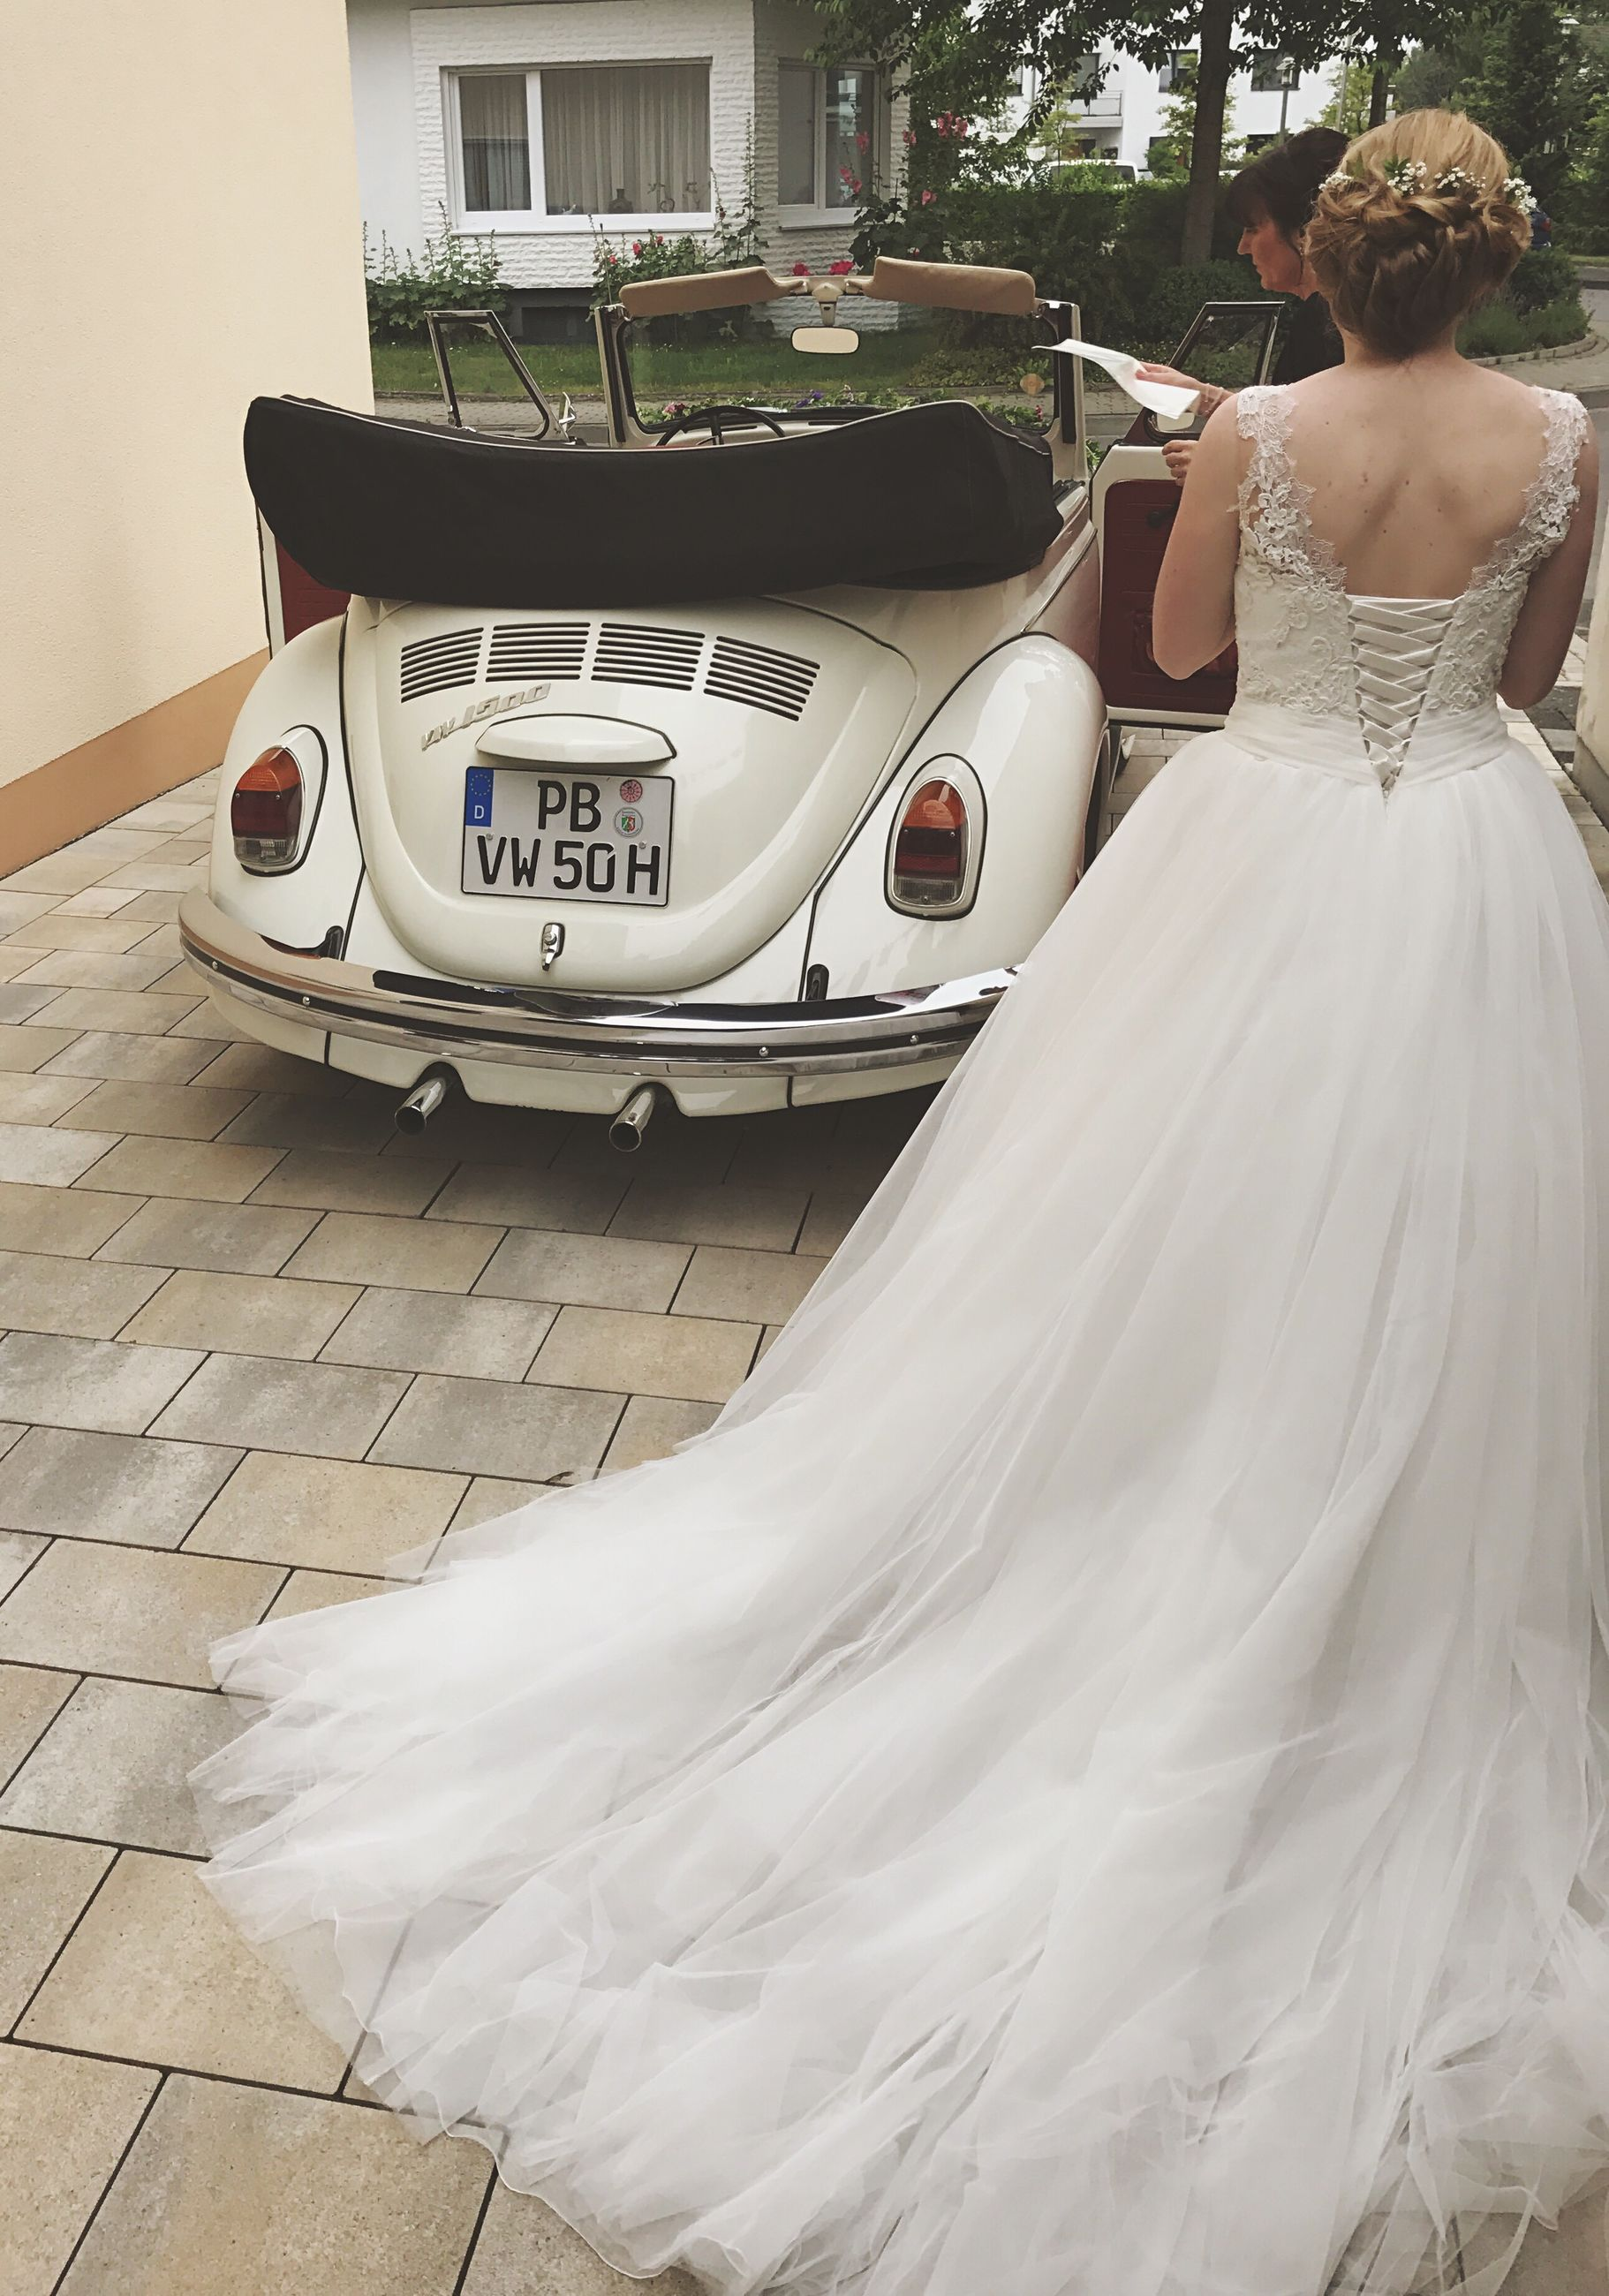 wedding, bride, mode of transport, car, real people, land vehicle, transportation, wedding dress, day, life events, one person, women, celebration, outdoors, built structure, standing, building exterior